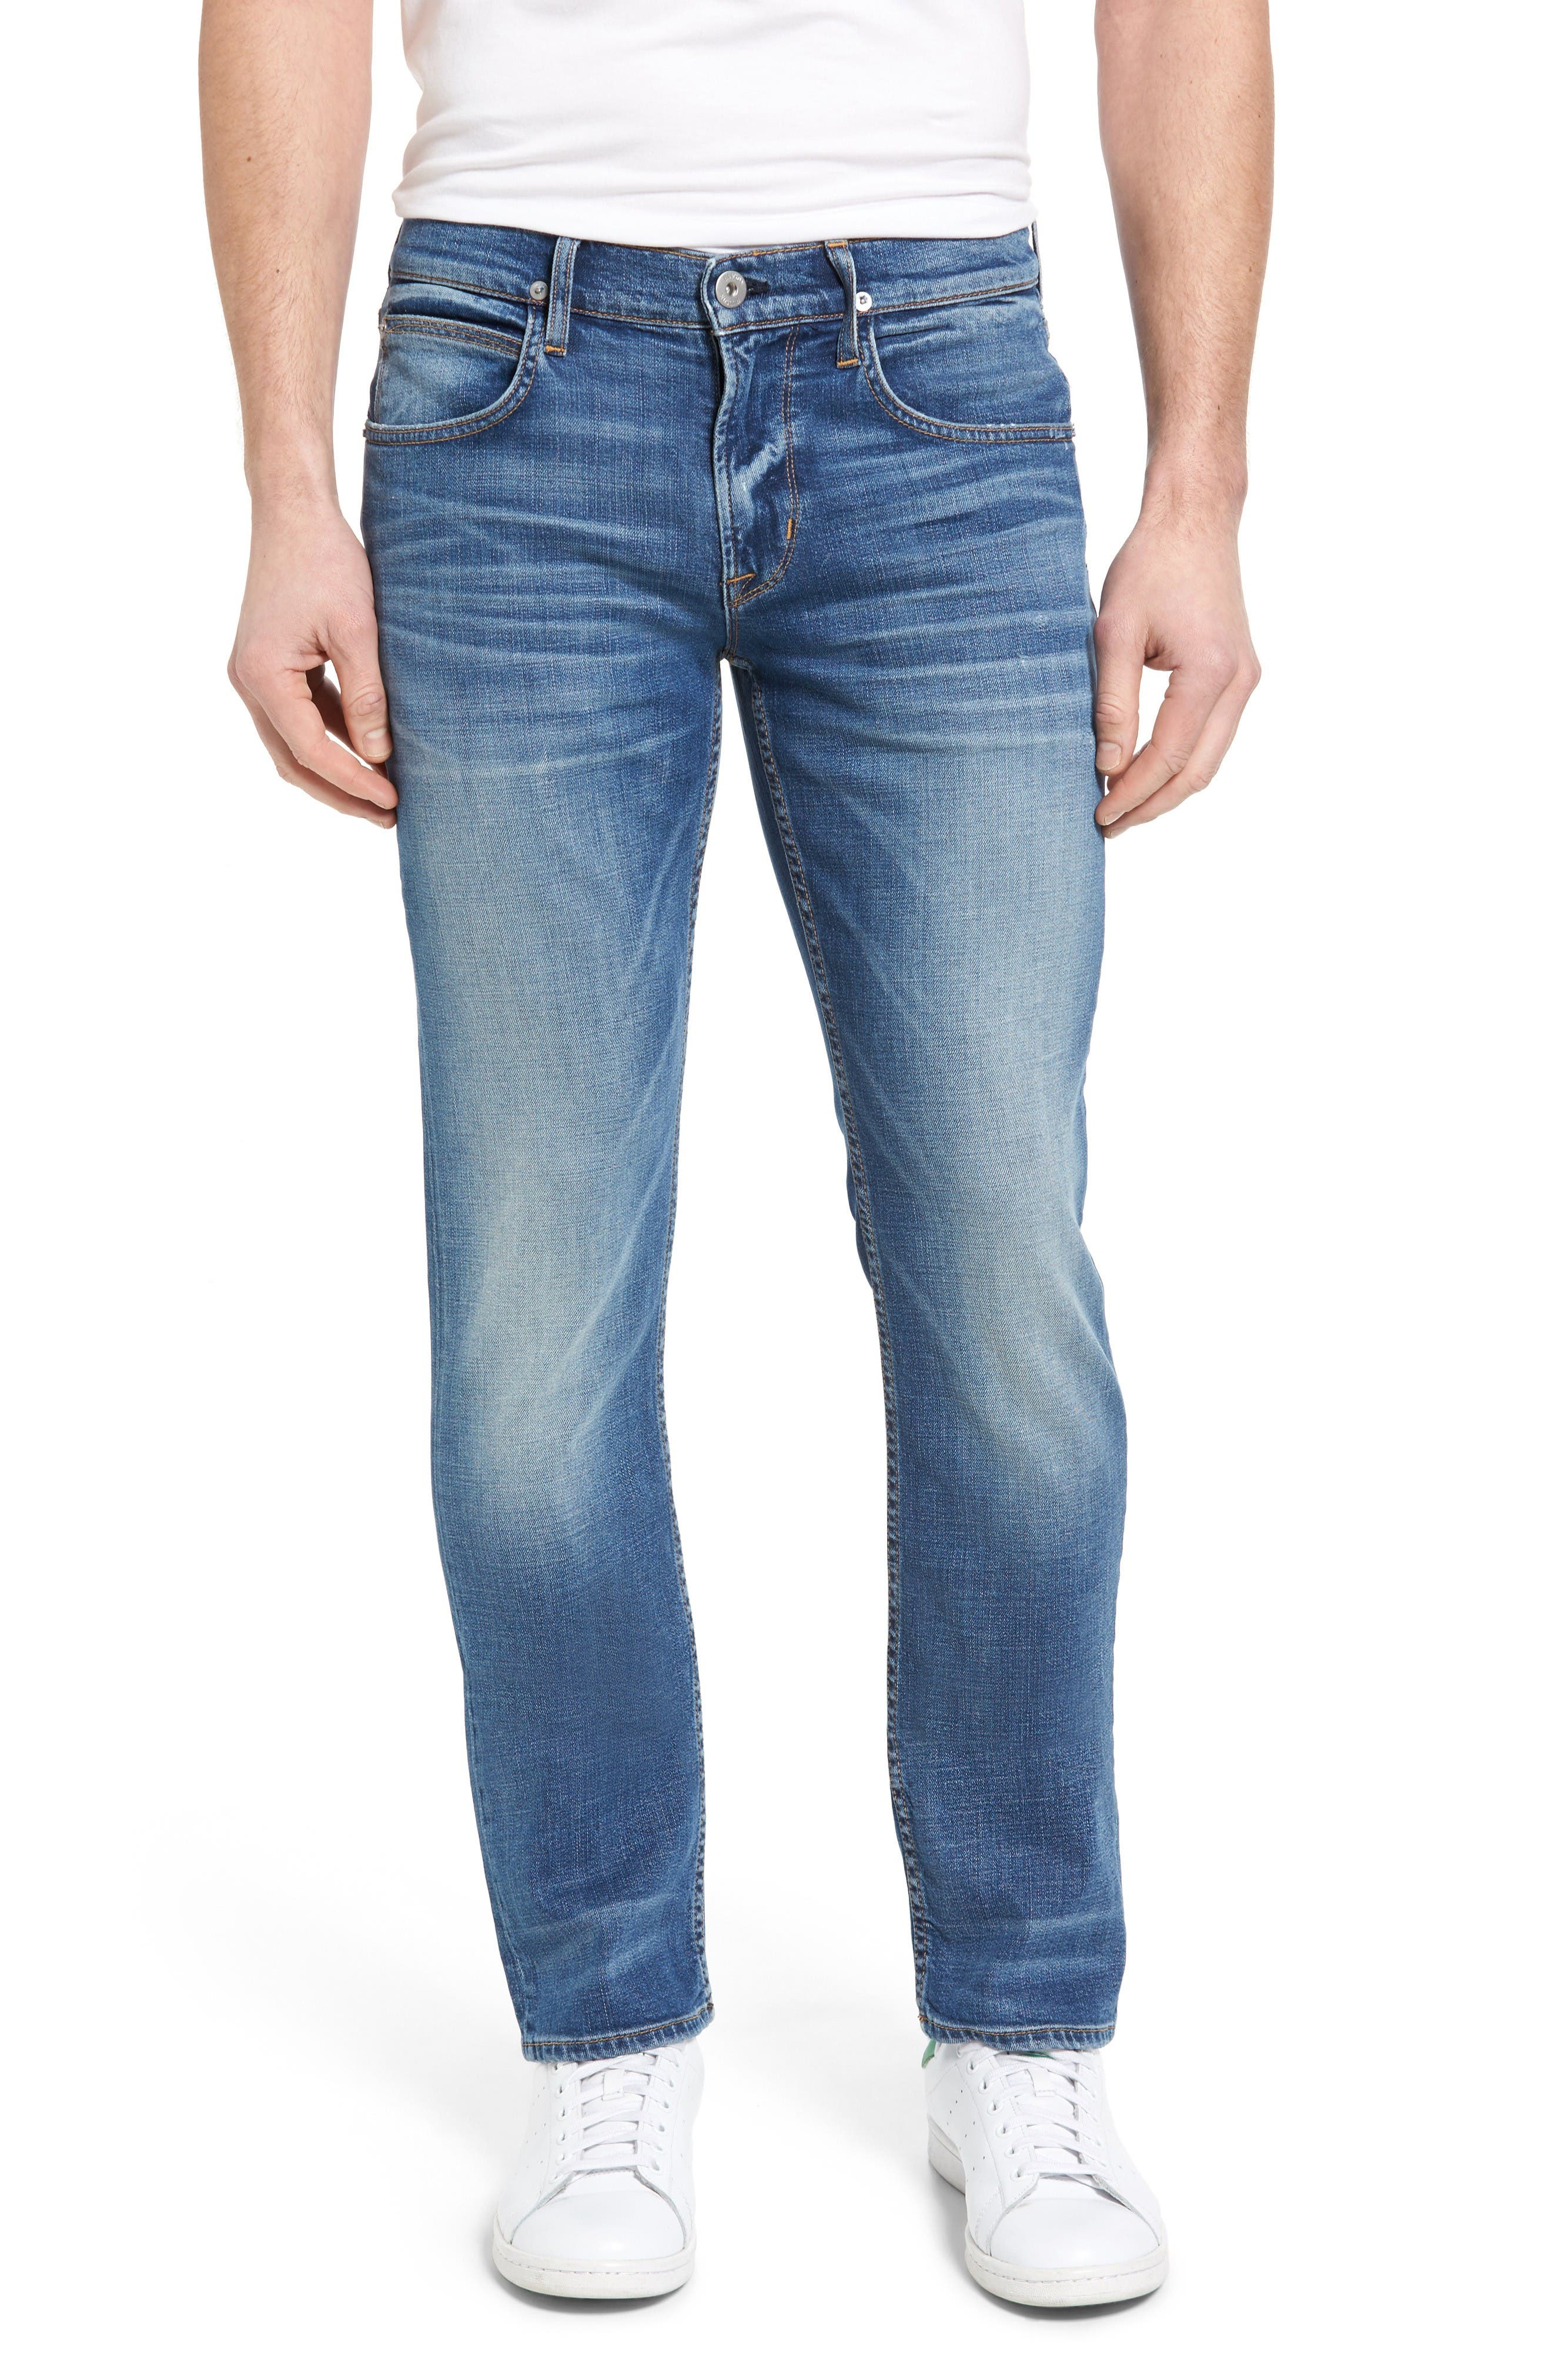 Alternate Image 1 Selected - Hudson Jeans Byron Slim Straight Leg Jeans (Normandy)